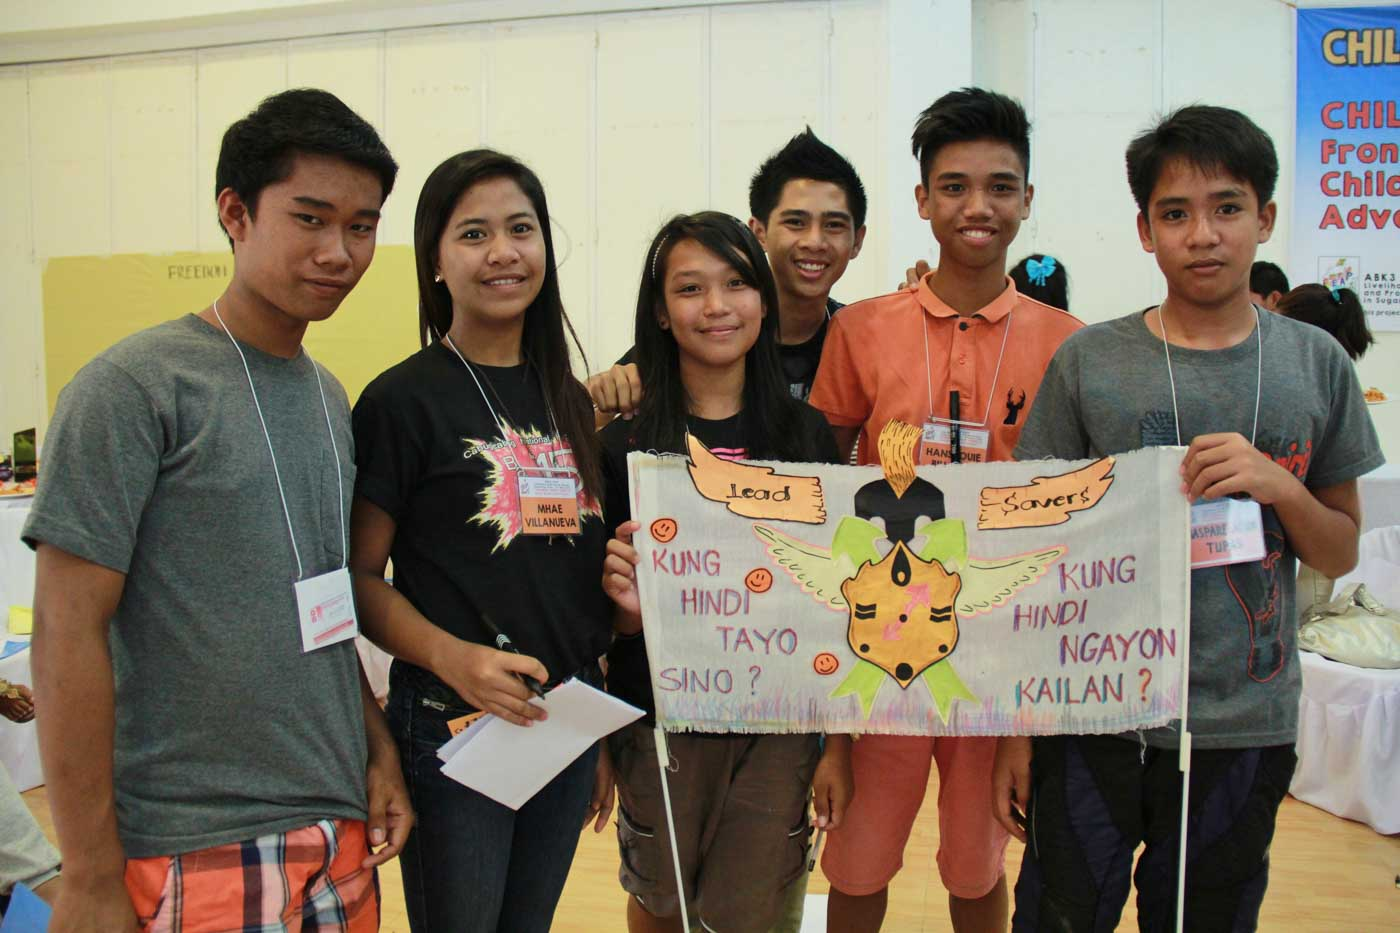 EMPOWERED YOUTH. Conejar (center) with some ABK3 Leap participants at the Children and Youth Forum in May 2015. Photo by World Vision